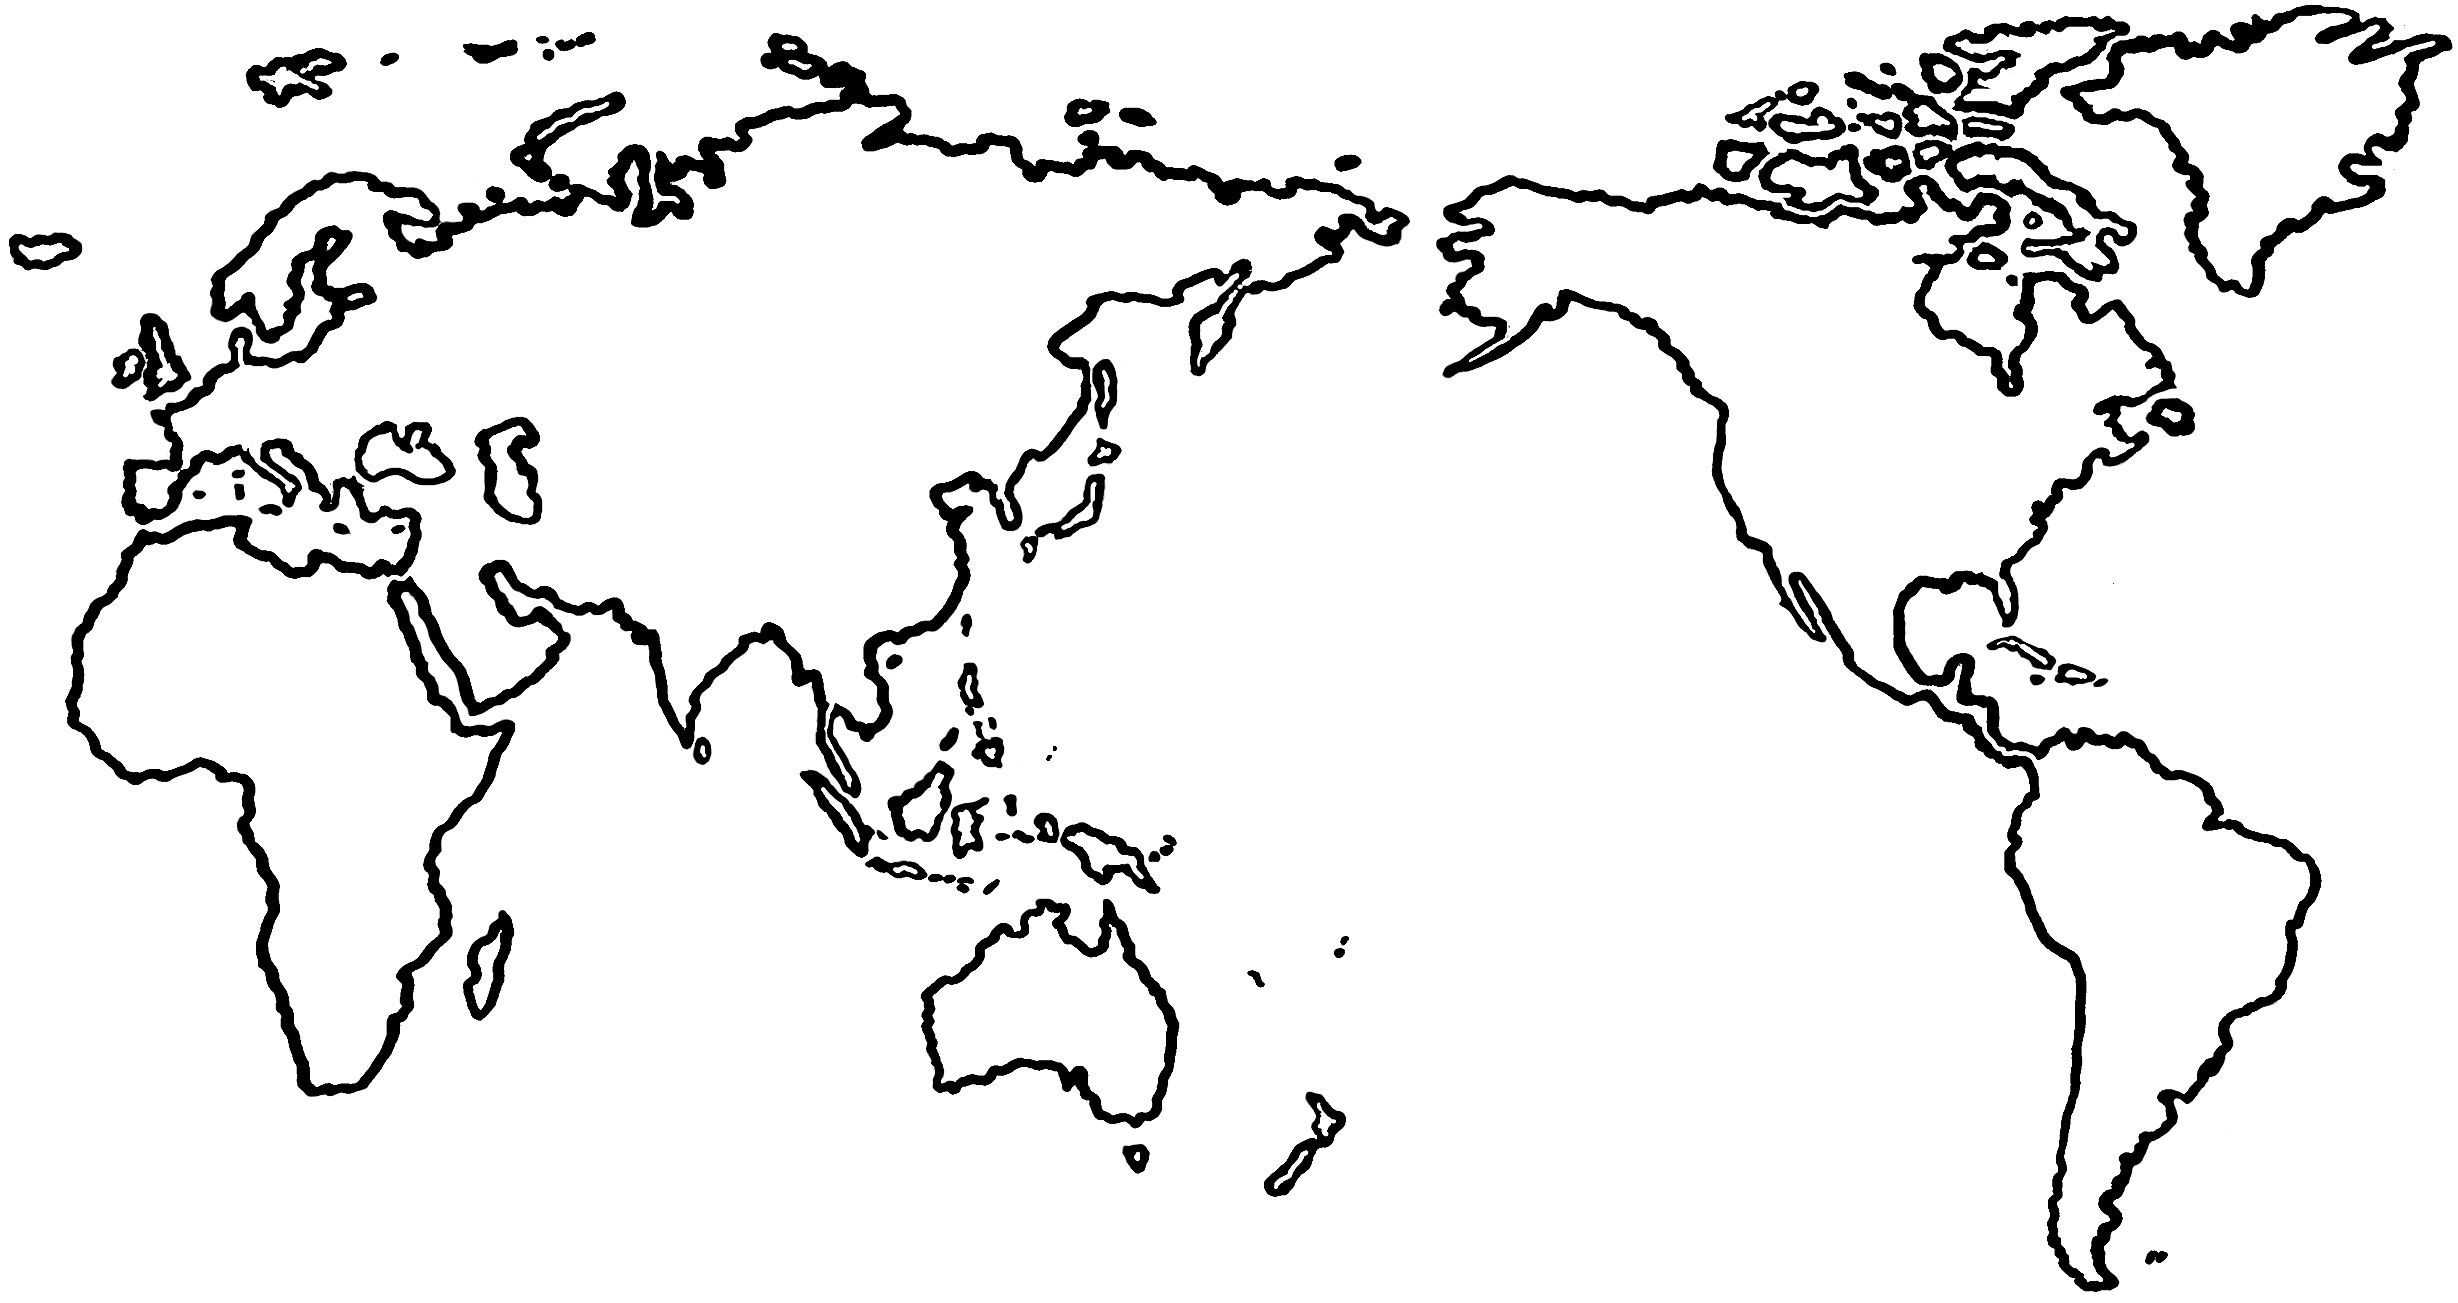 Map clipart simple. Us black and white